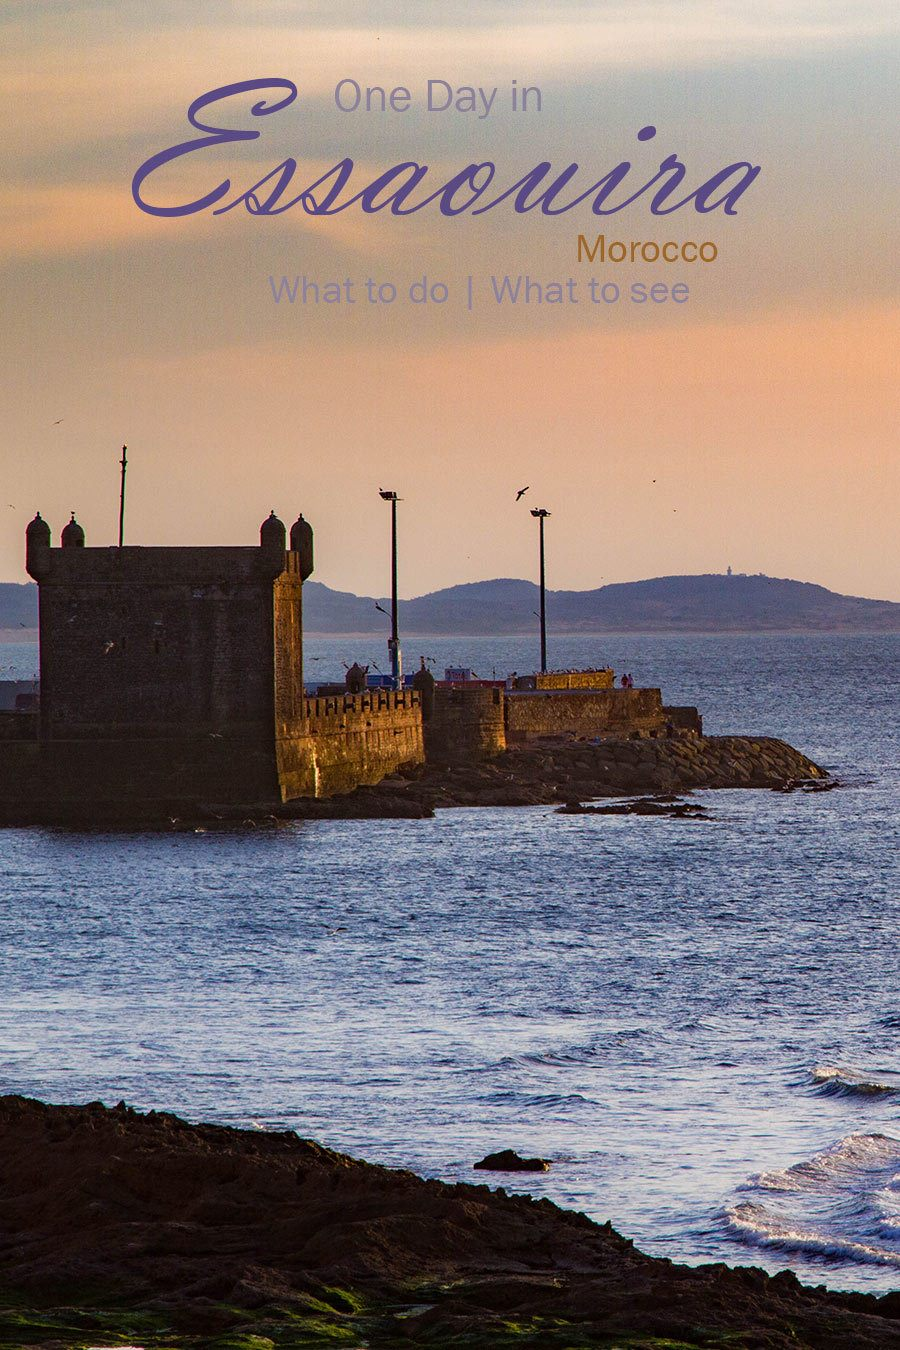 Exotic Essaouira! The most beautiful city in Morocco!